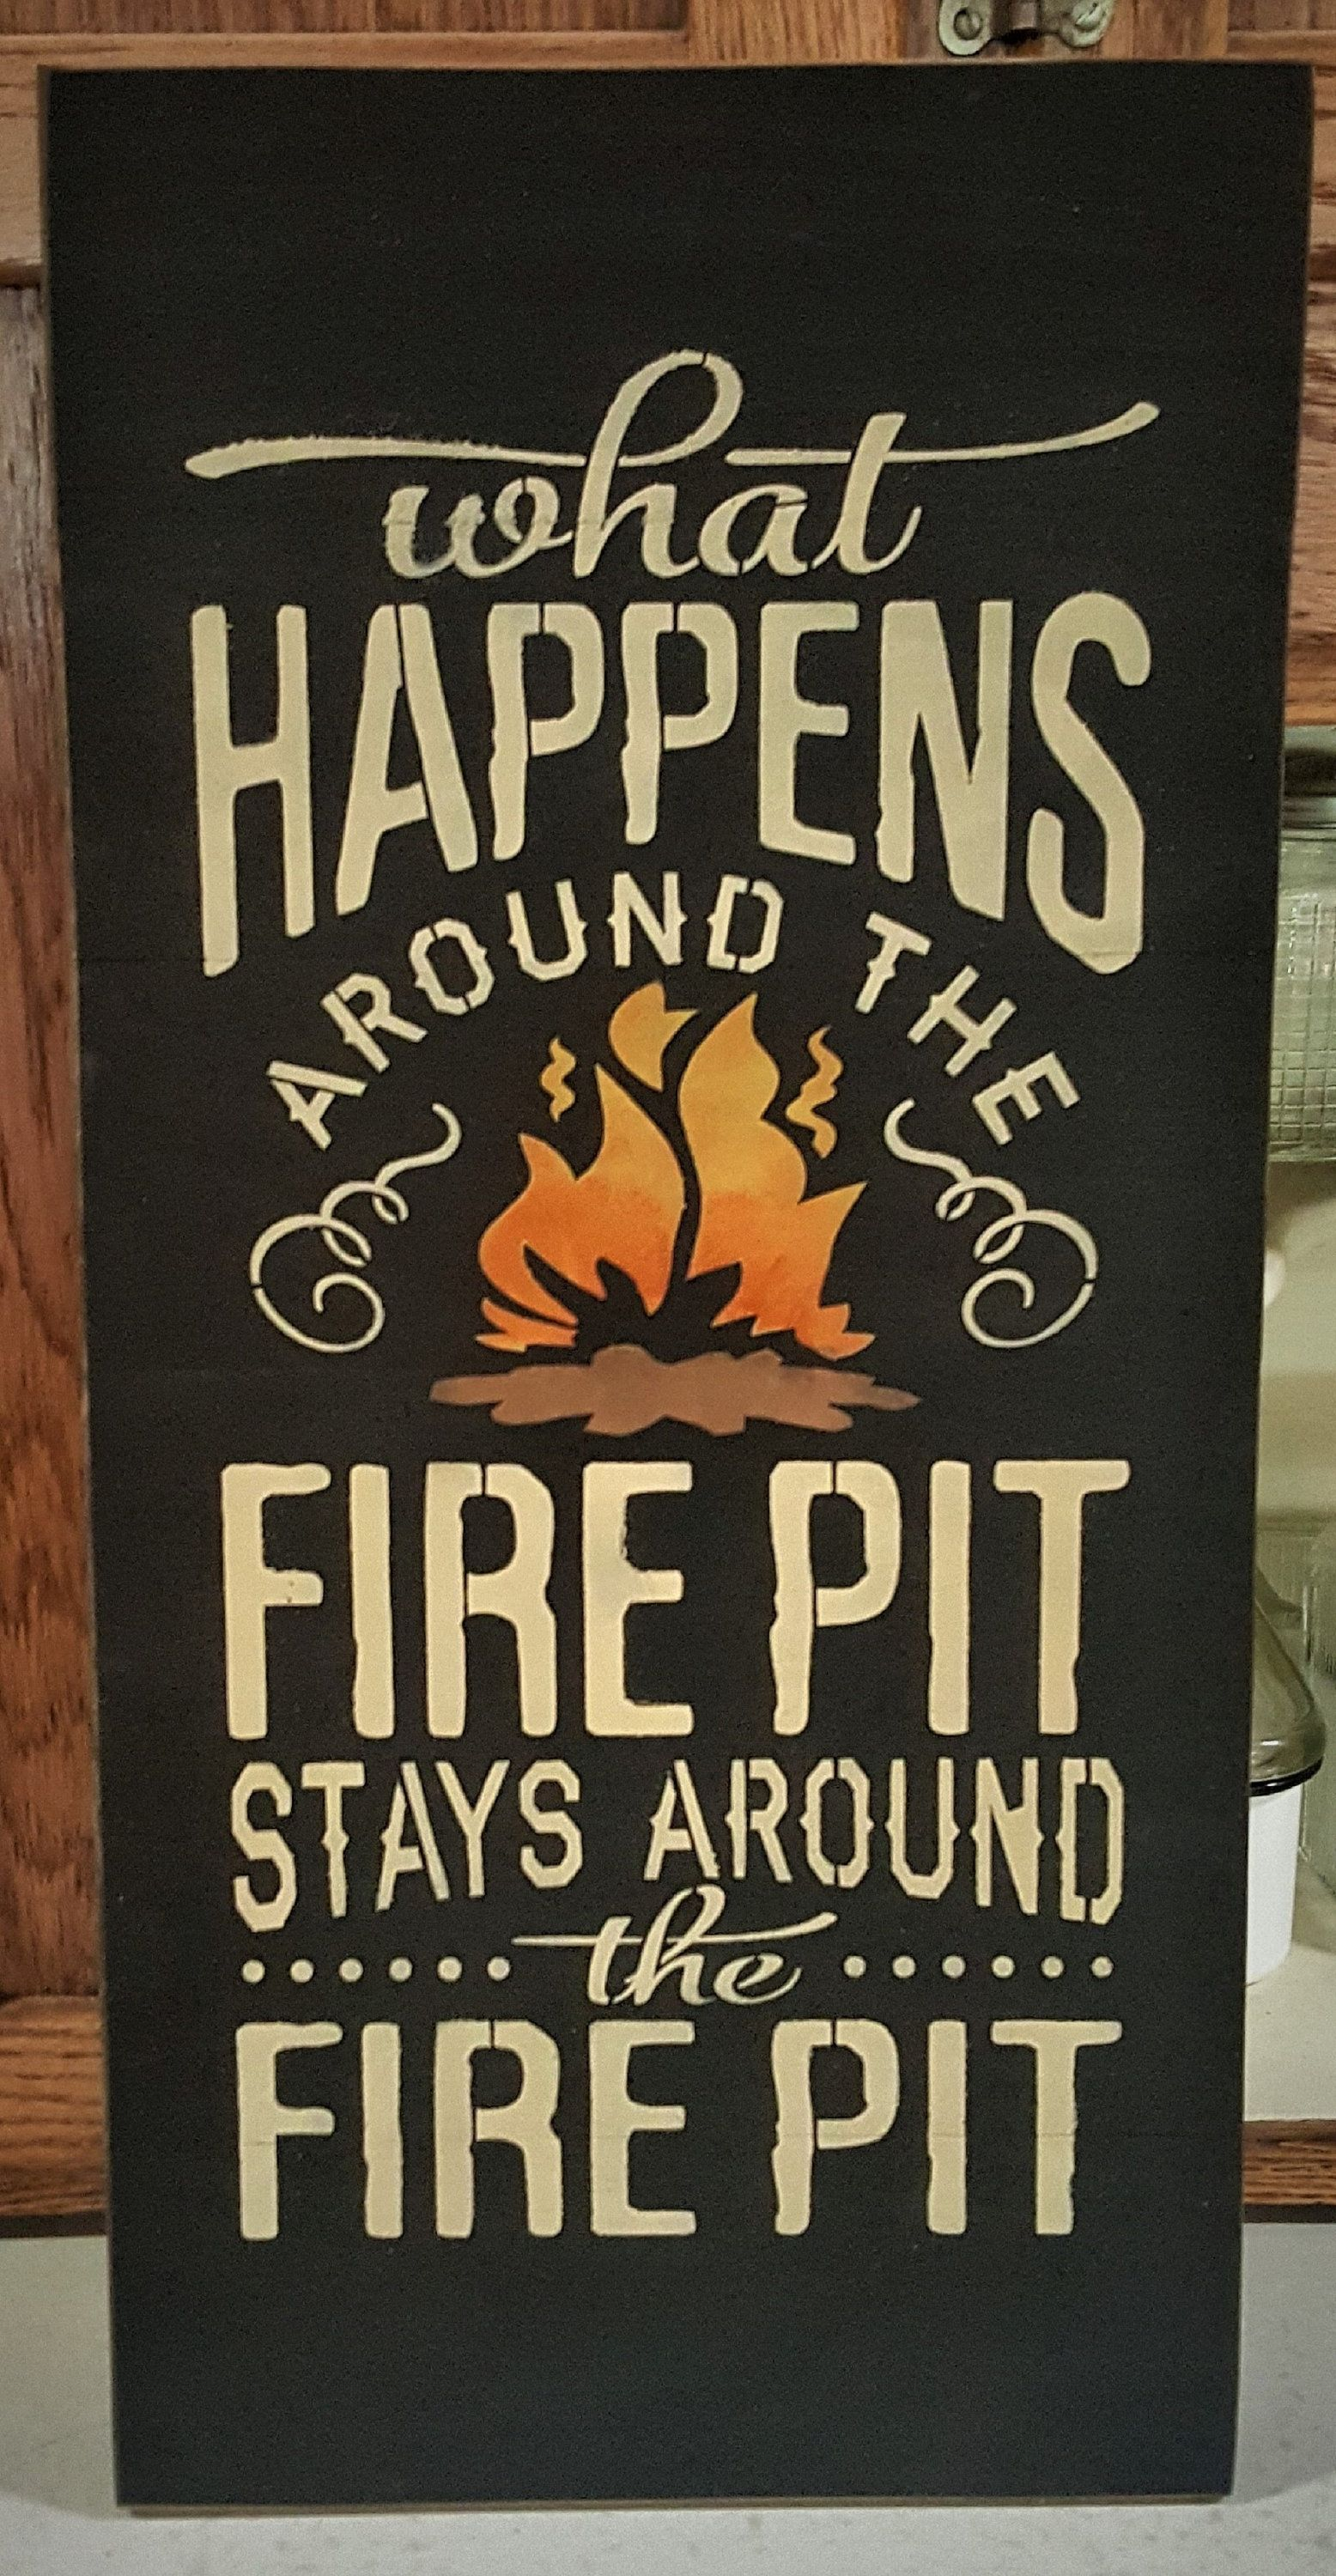 What Happens Around The Fire Pit Sign Fire Pit Outdoor Sign Etsy In 2021 Outdoor Fire Pit Fire Pit Outdoor Signs